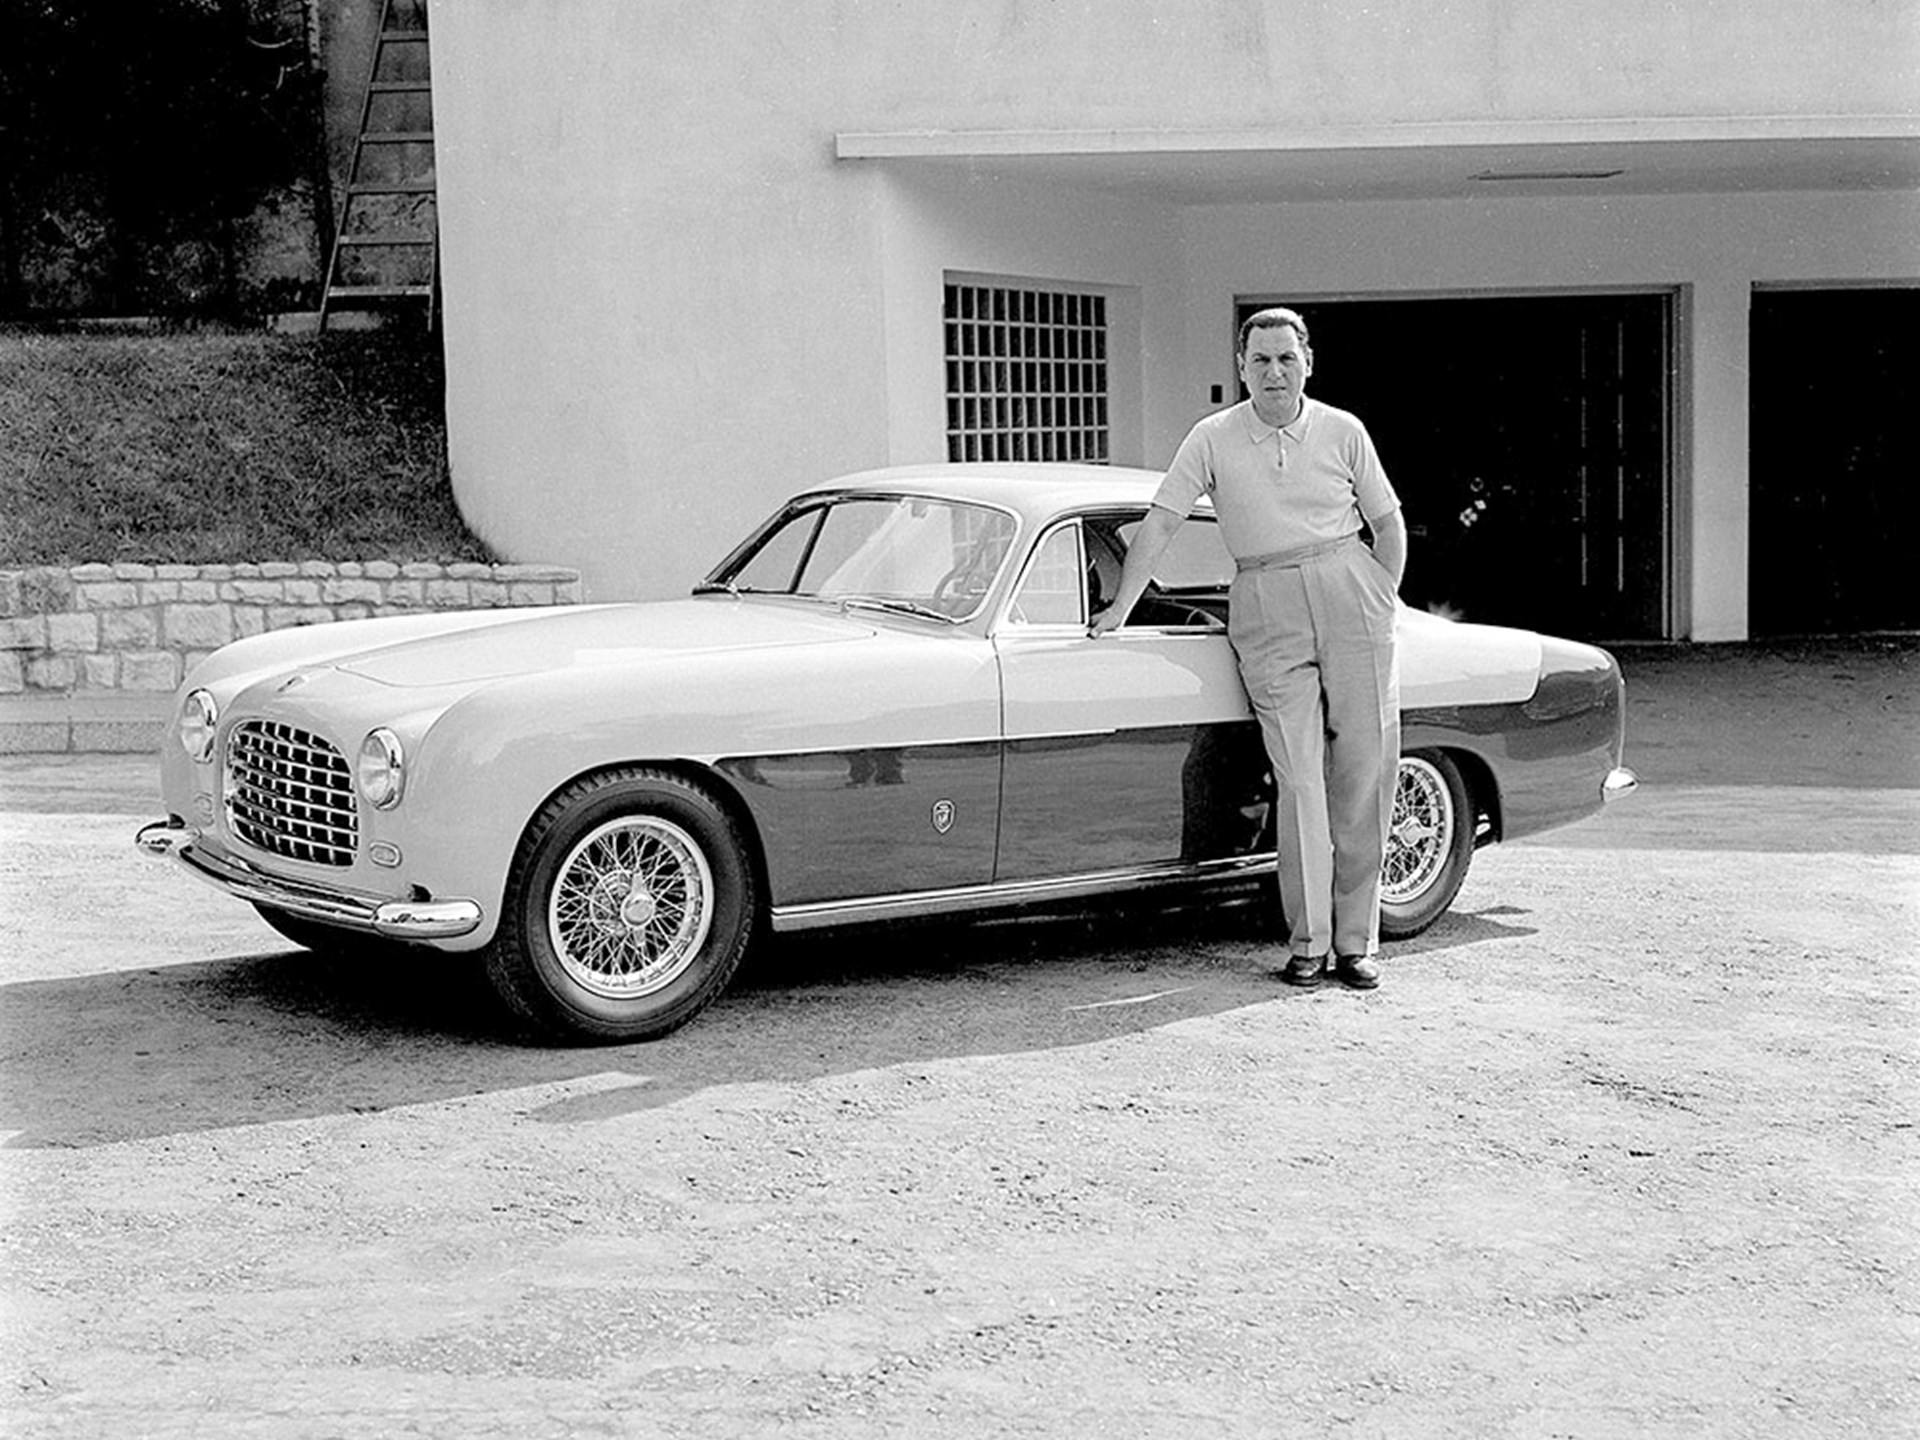 Argentinian President Juan Perón poses with his 212 Inter, believed to be outside of Casa Rosada in Buenos Aires.